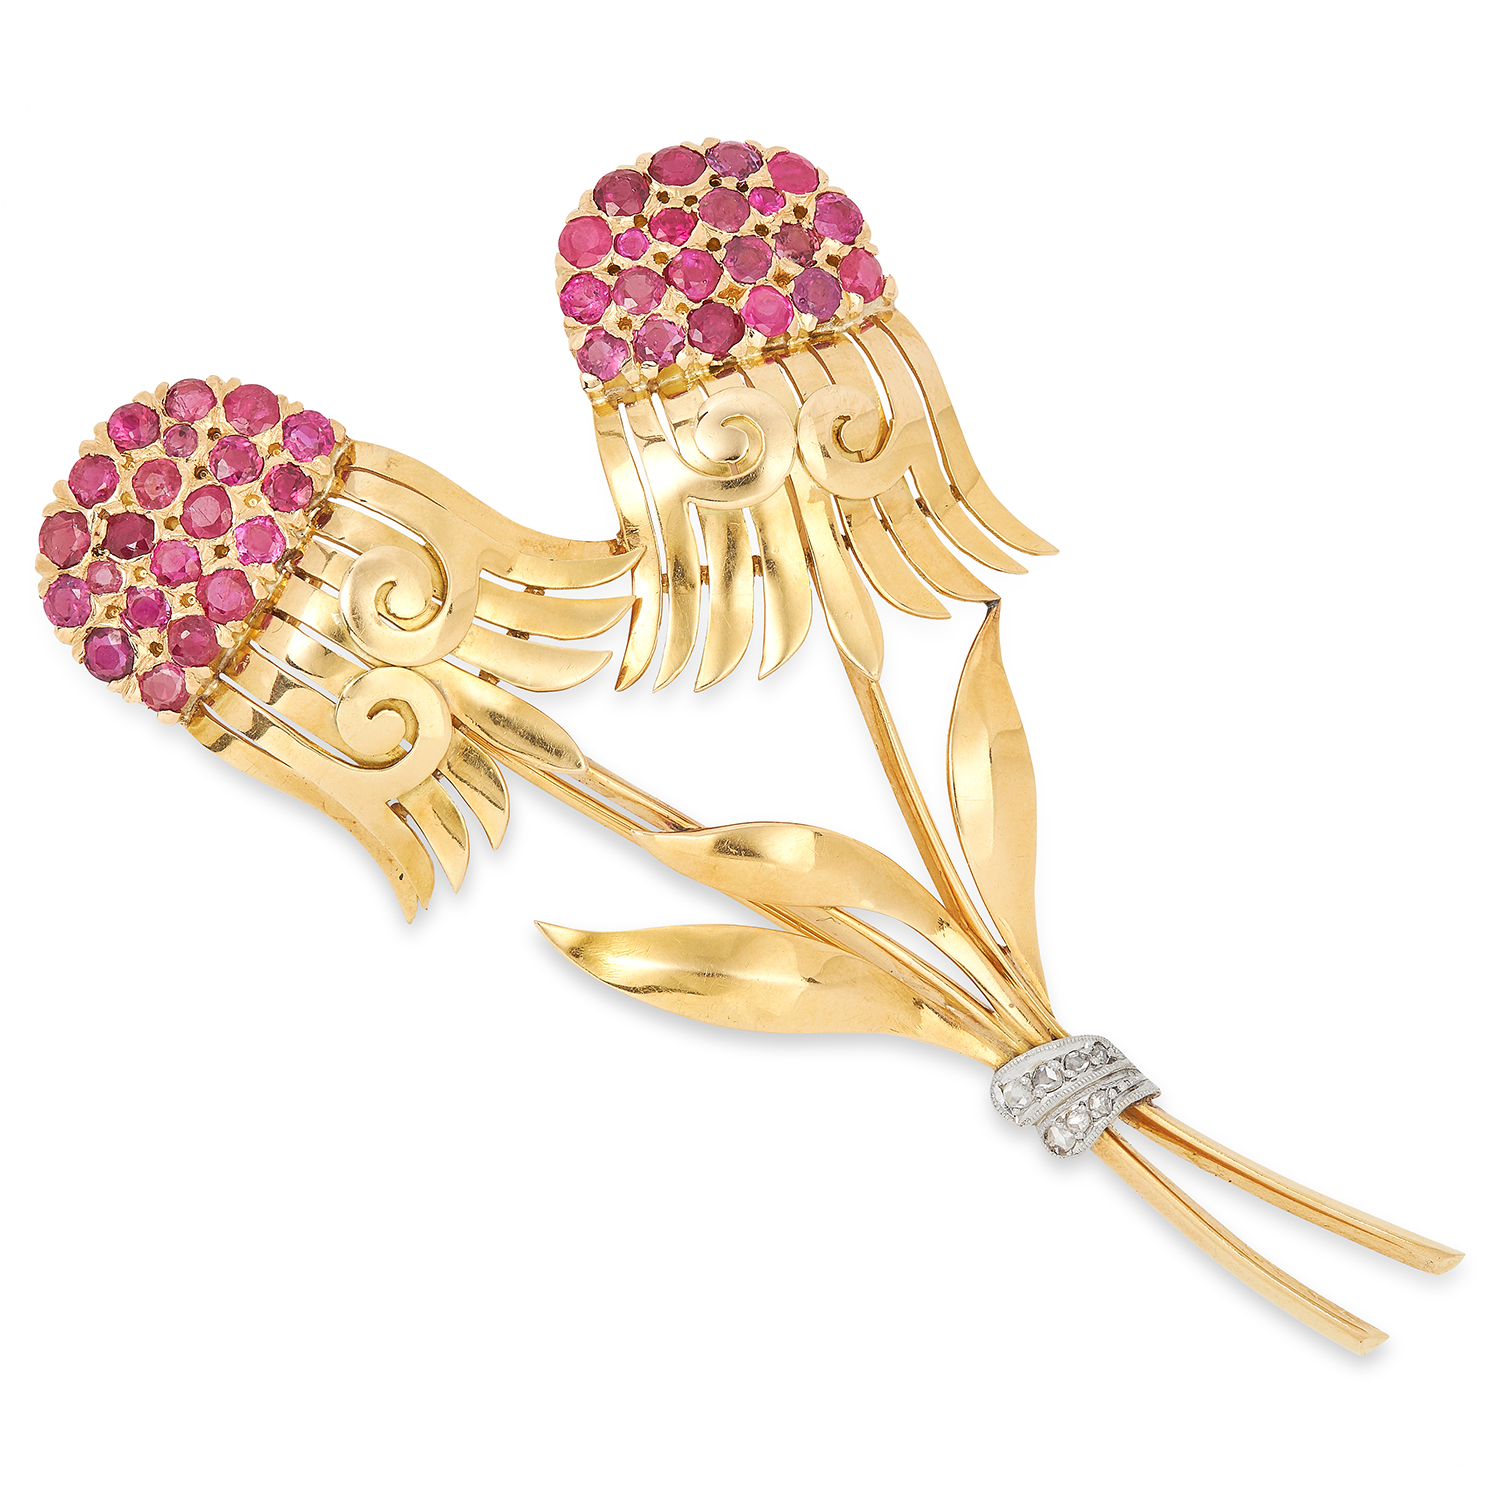 VINTAGE RUBY AND DIAMOND FLOWER SPRAY BROOCH set with round cut rubies and rose cut diamonds, 9.1cm,